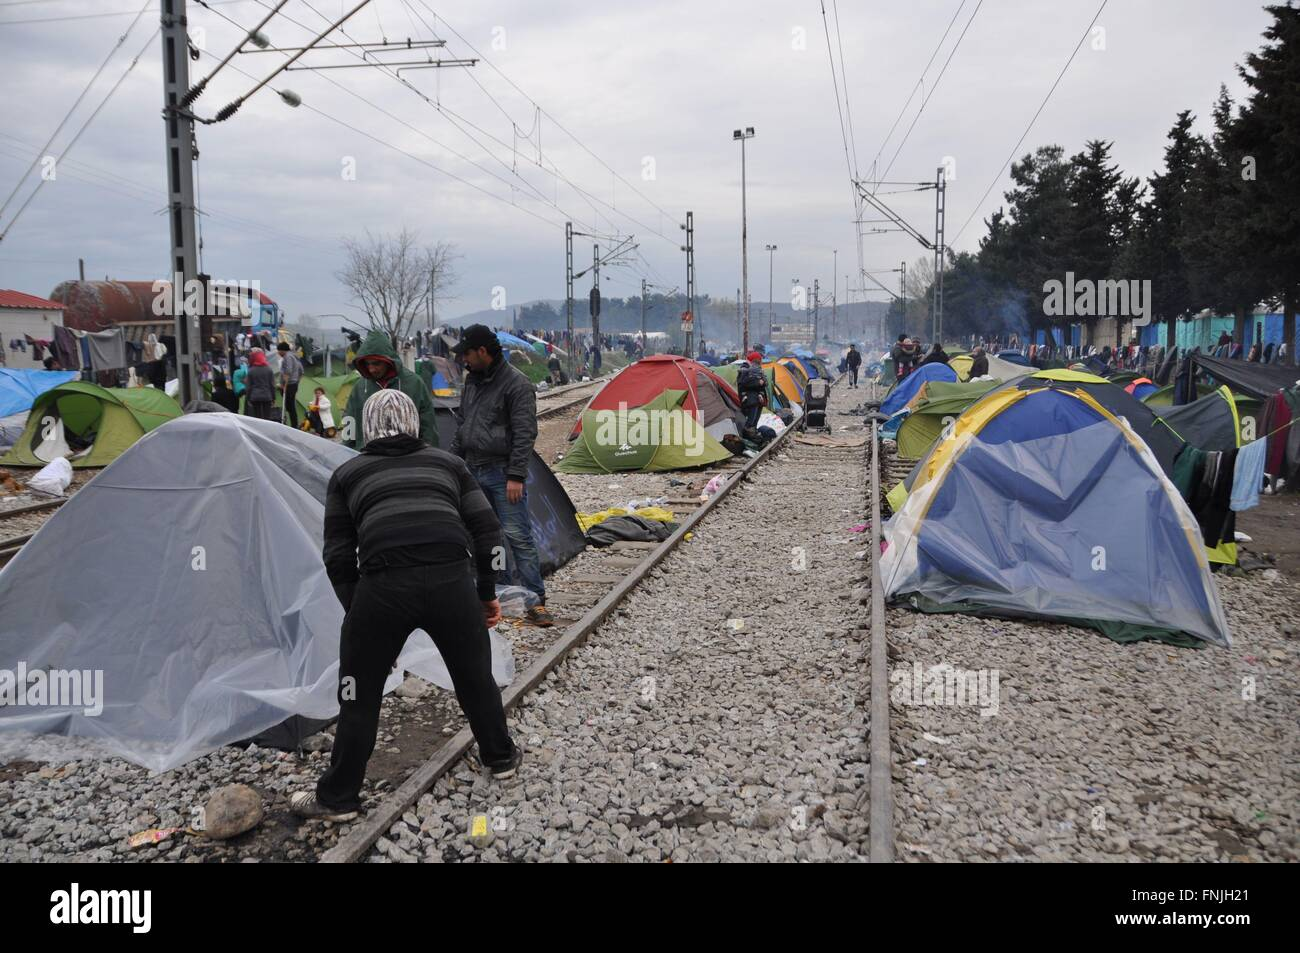 Idomeni, Greece. 14th Mar, 2016. Refugees put plastic on their tents at the Greek-Macedonian border near Idomeni, - Stock Image